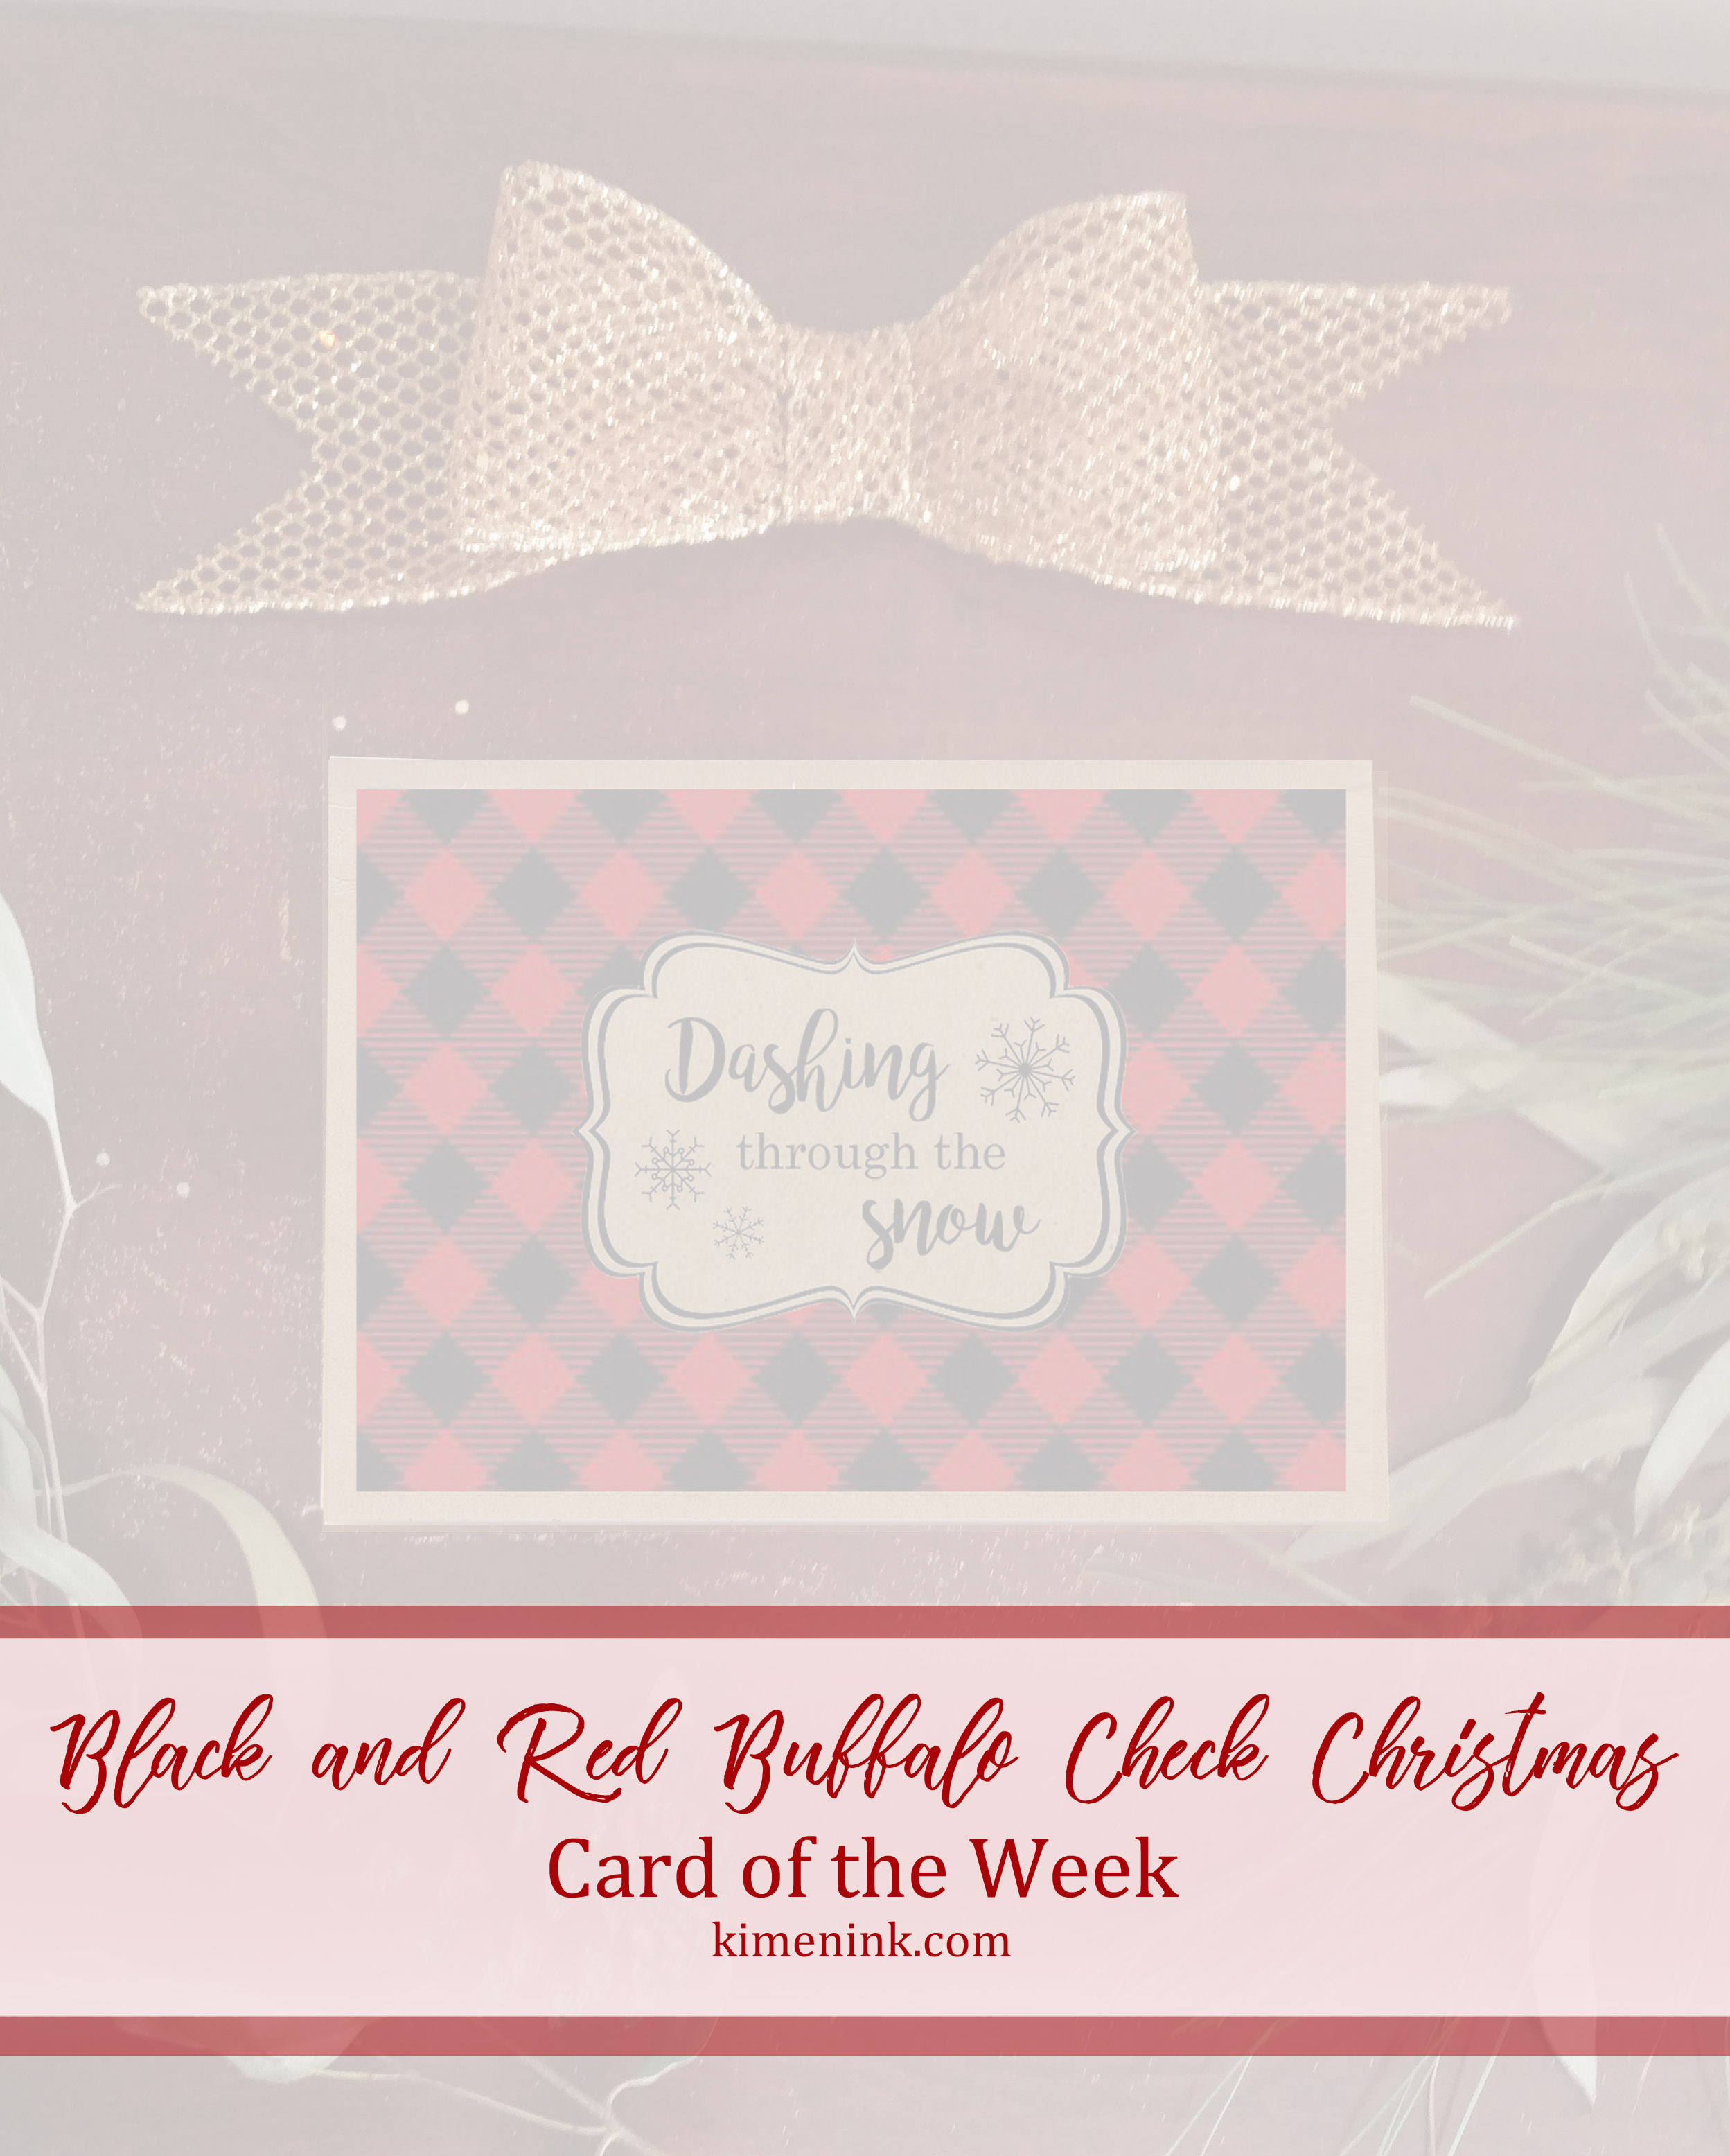 Black and Red Buffalo Check Christmas Card of the Week image